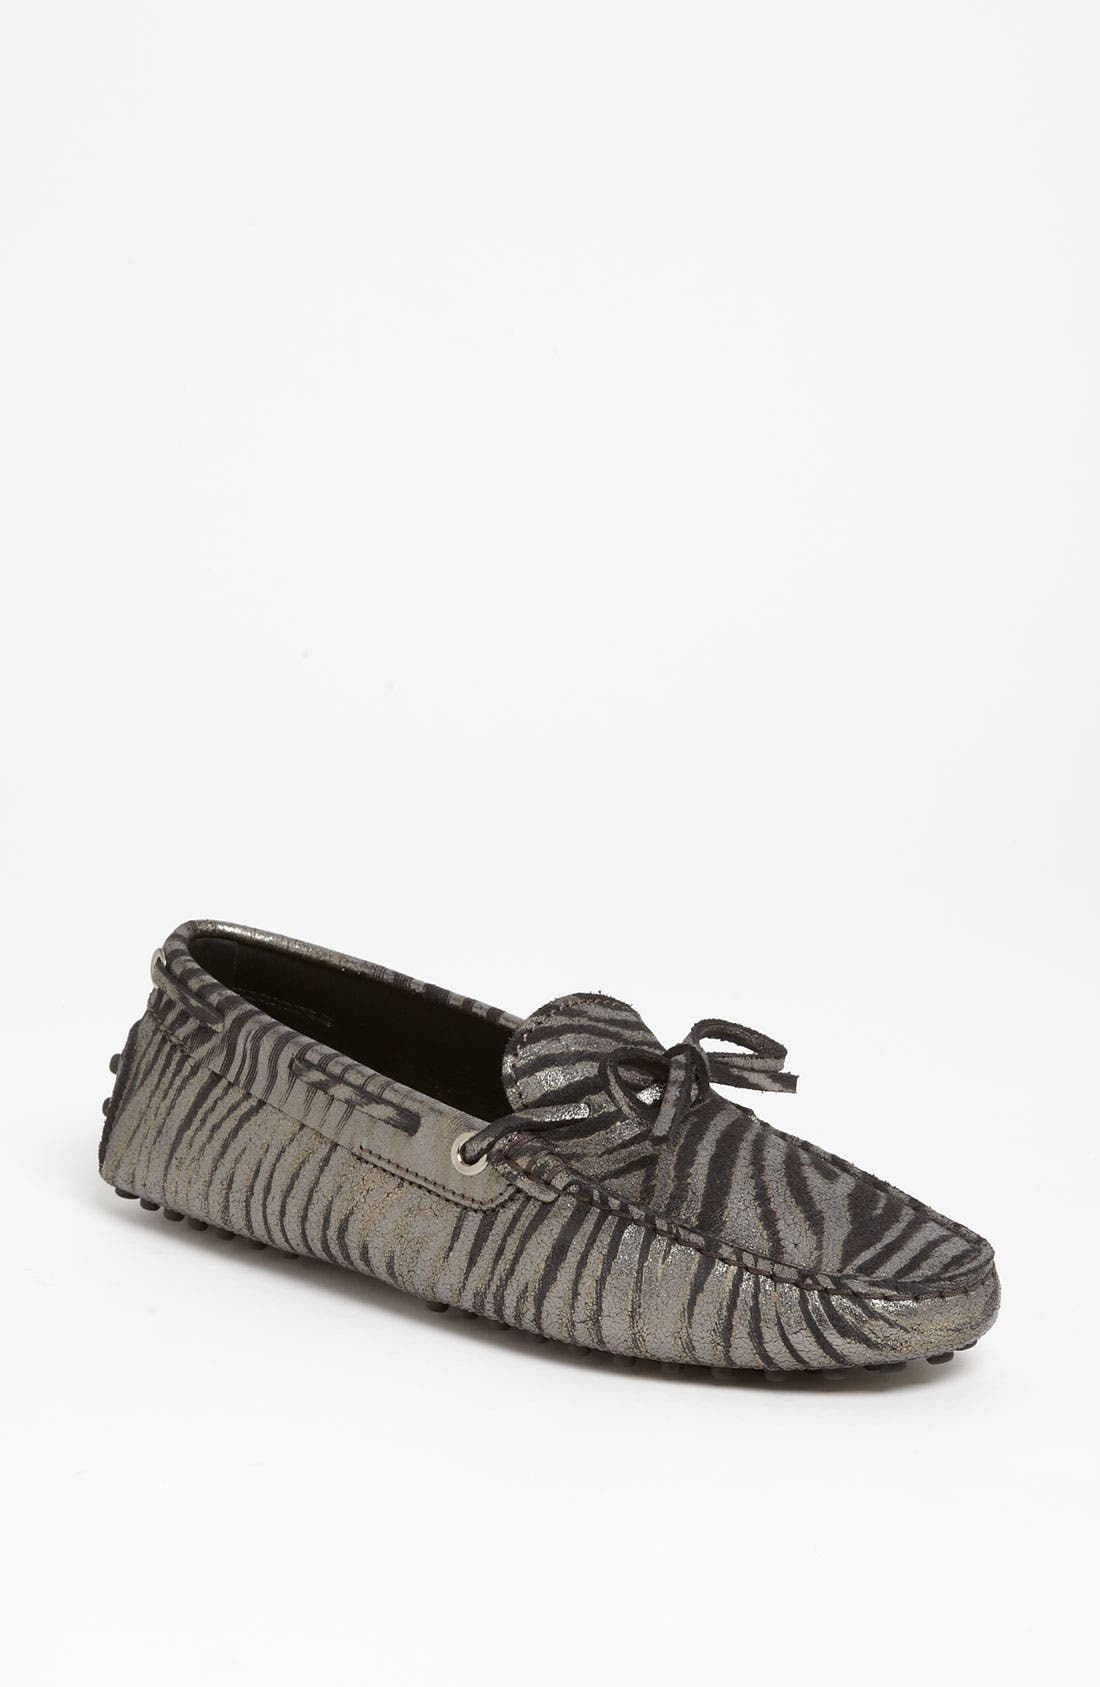 Alternate Image 1 Selected - Tod's 'Heaven Laccetto' Moccasin